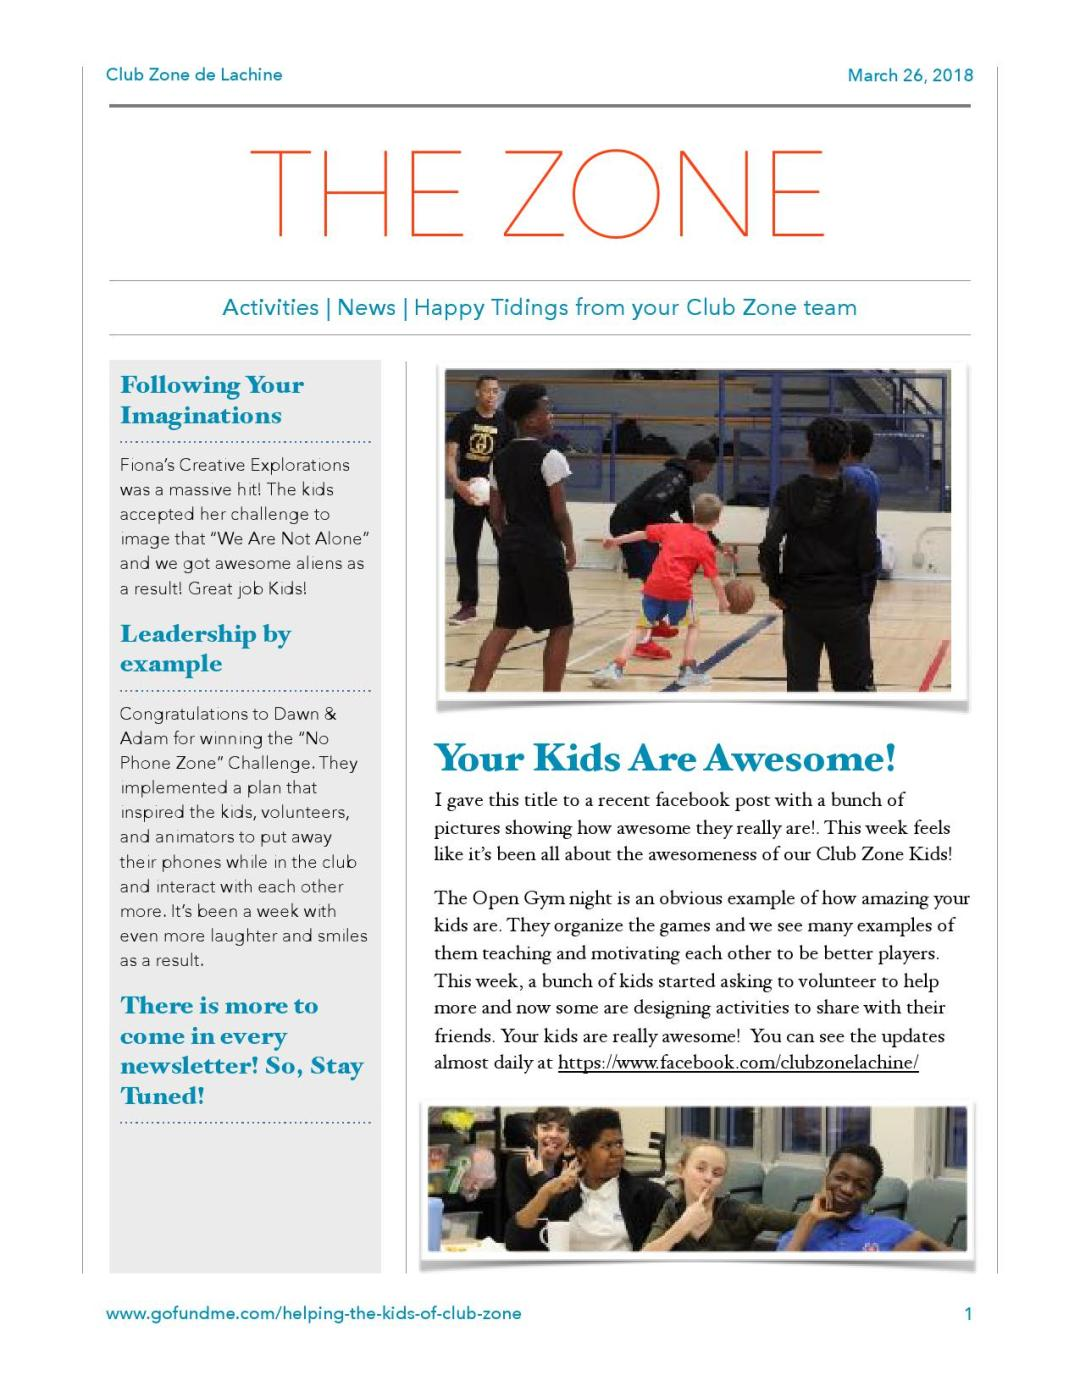 Club Zone Newsletter 2018-03-26_1